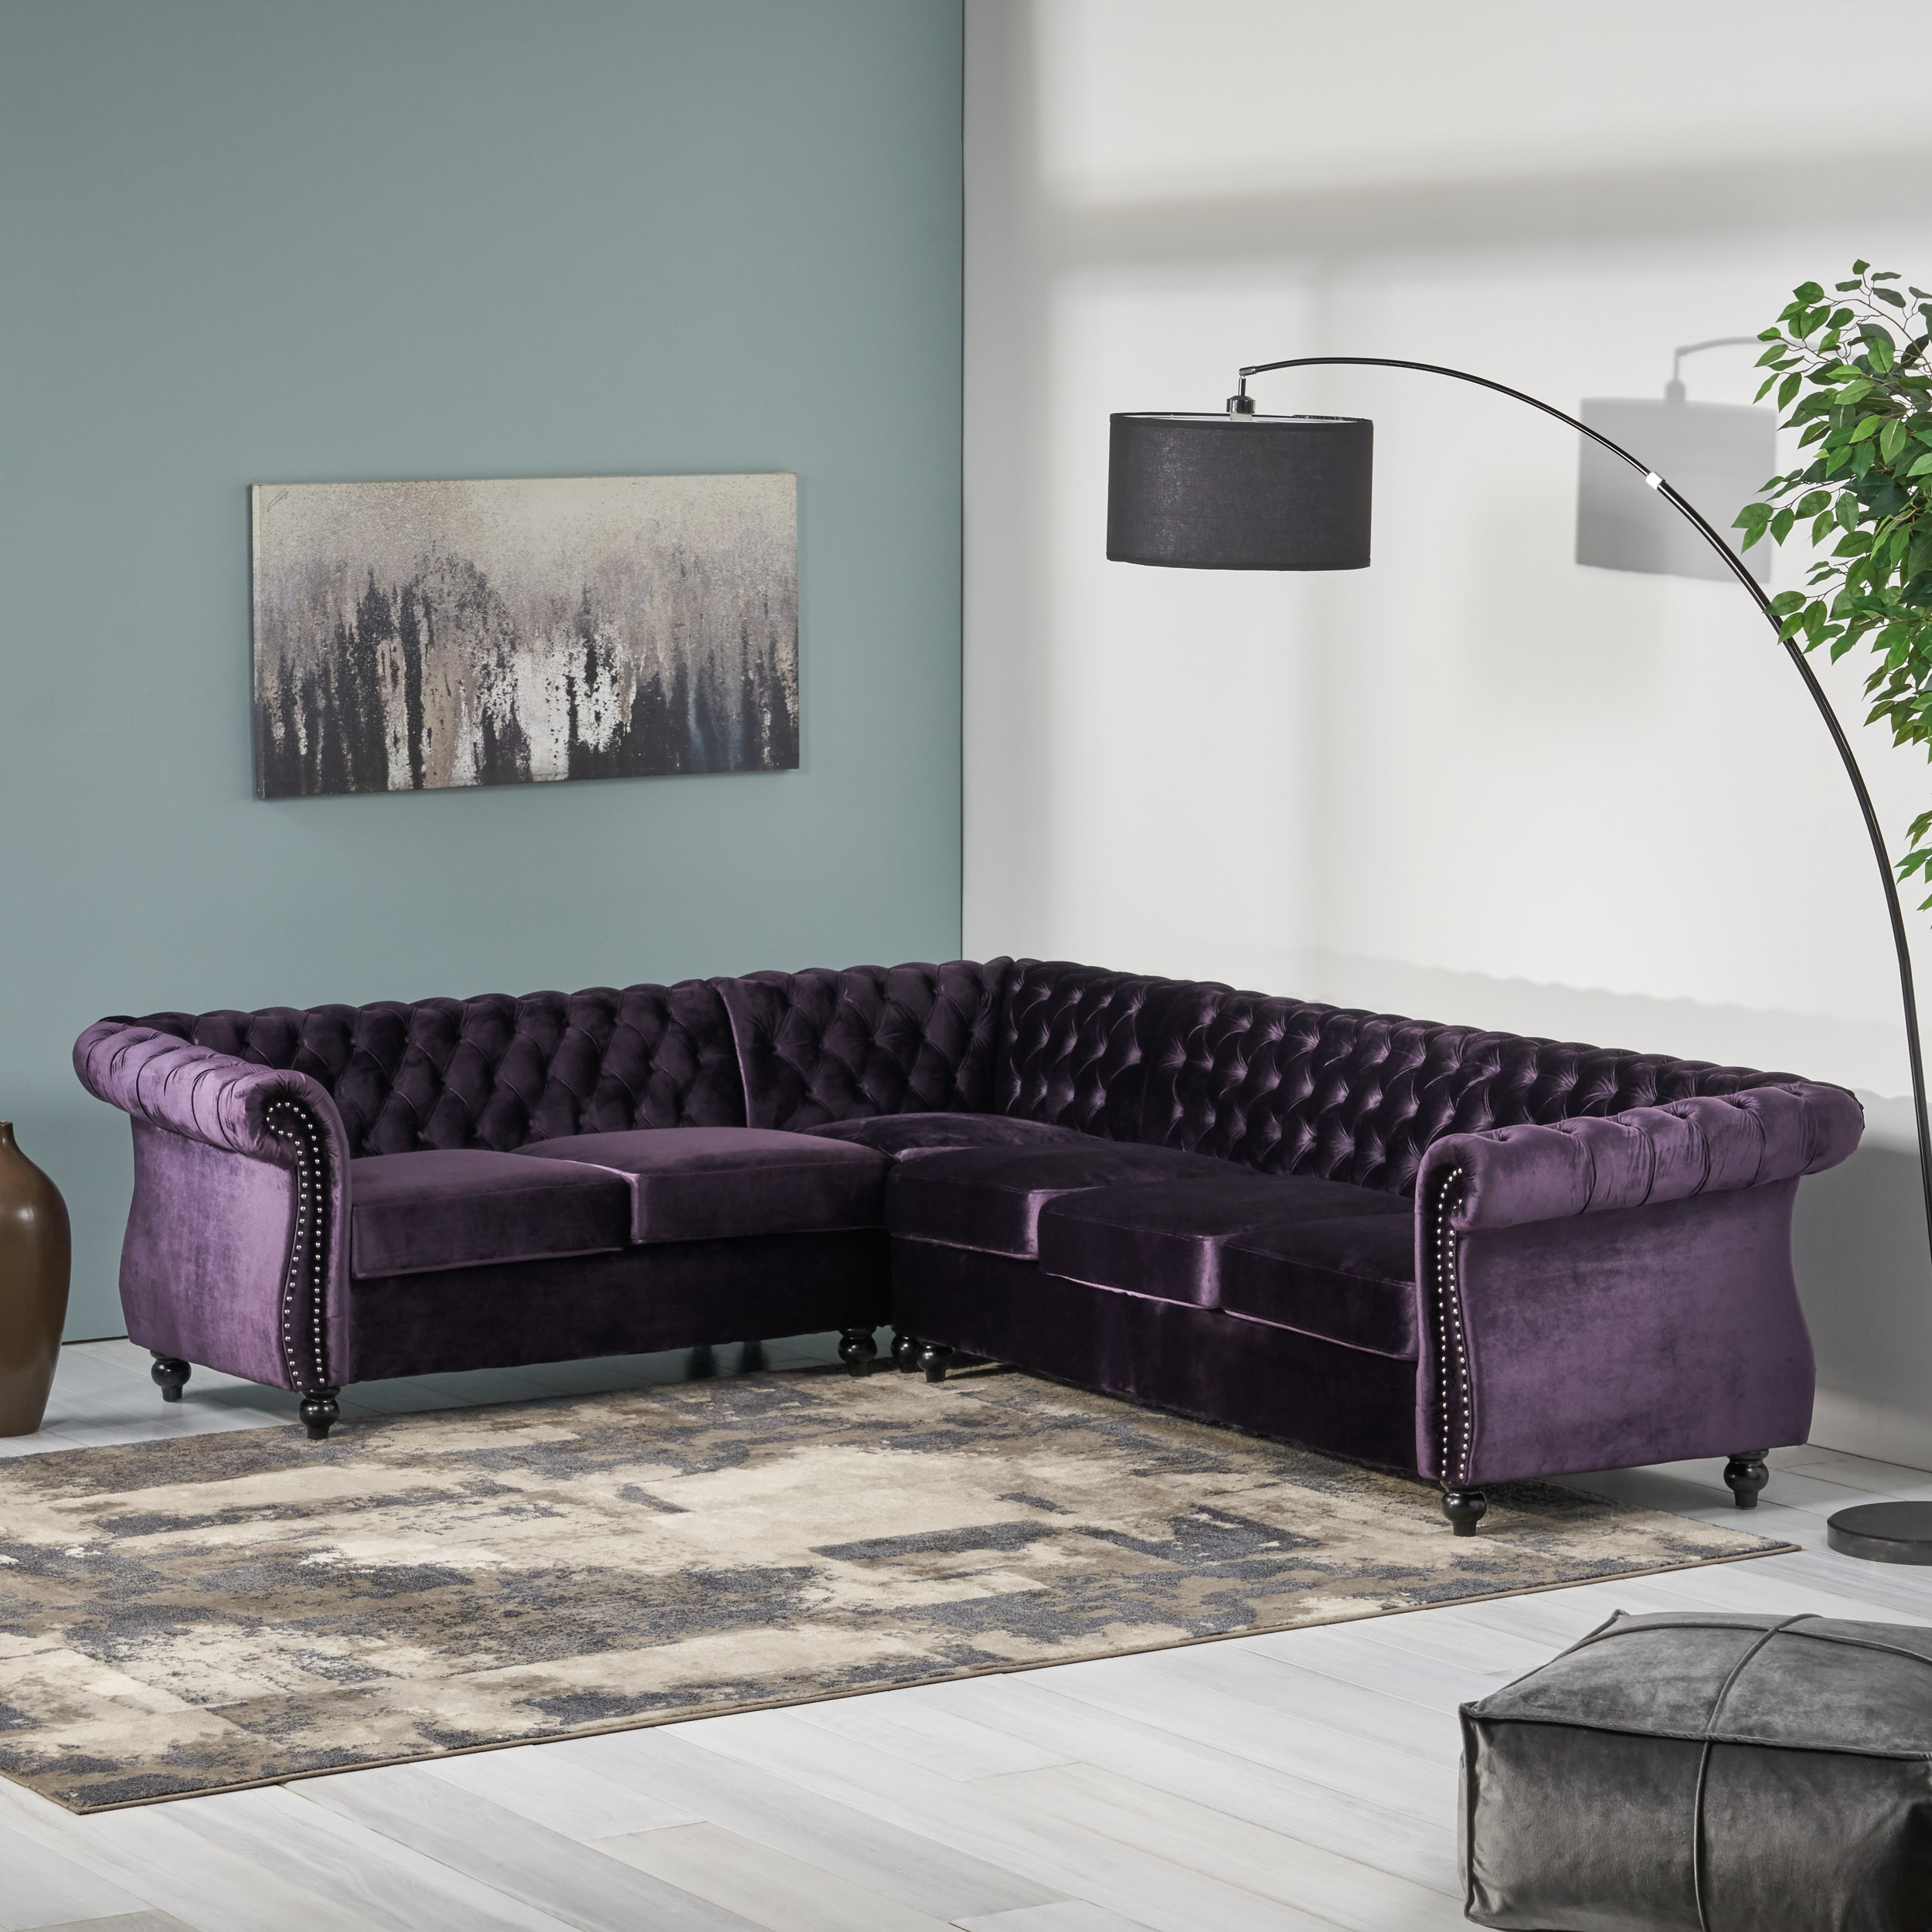 Amberside-6-Seater-Velvet-Tufted-Chesterfield-Sectional thumbnail 4